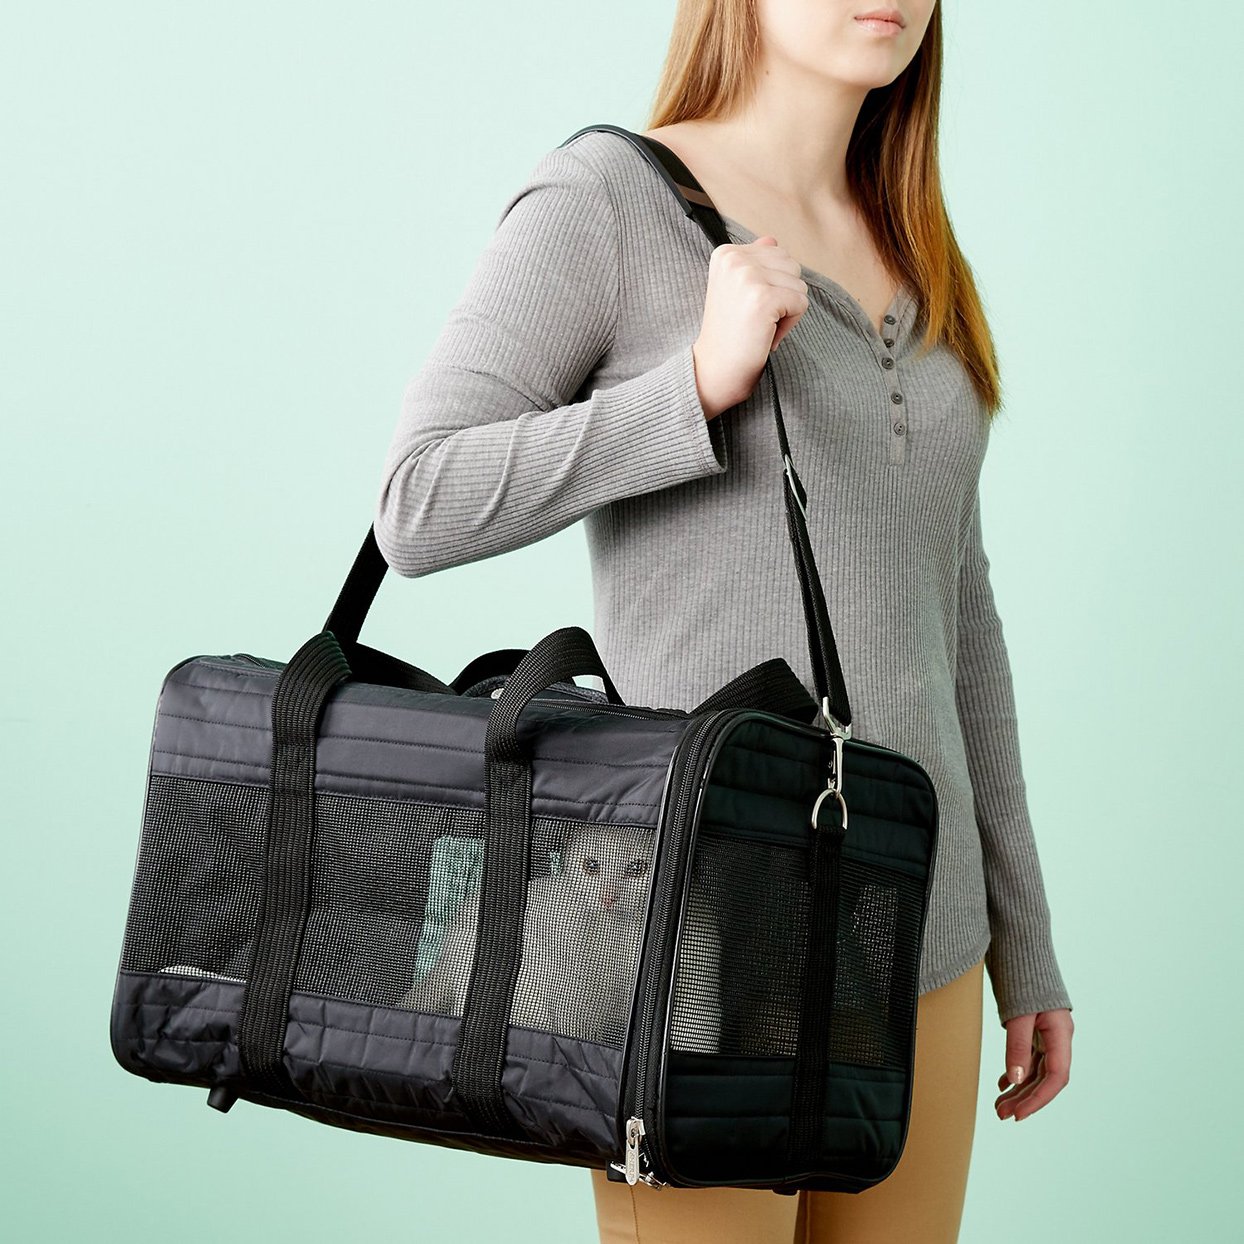 Woman carrying a Sherpa Original Deluxe Airline-Approved Dog & Cat Carrier Bag on her shoulder